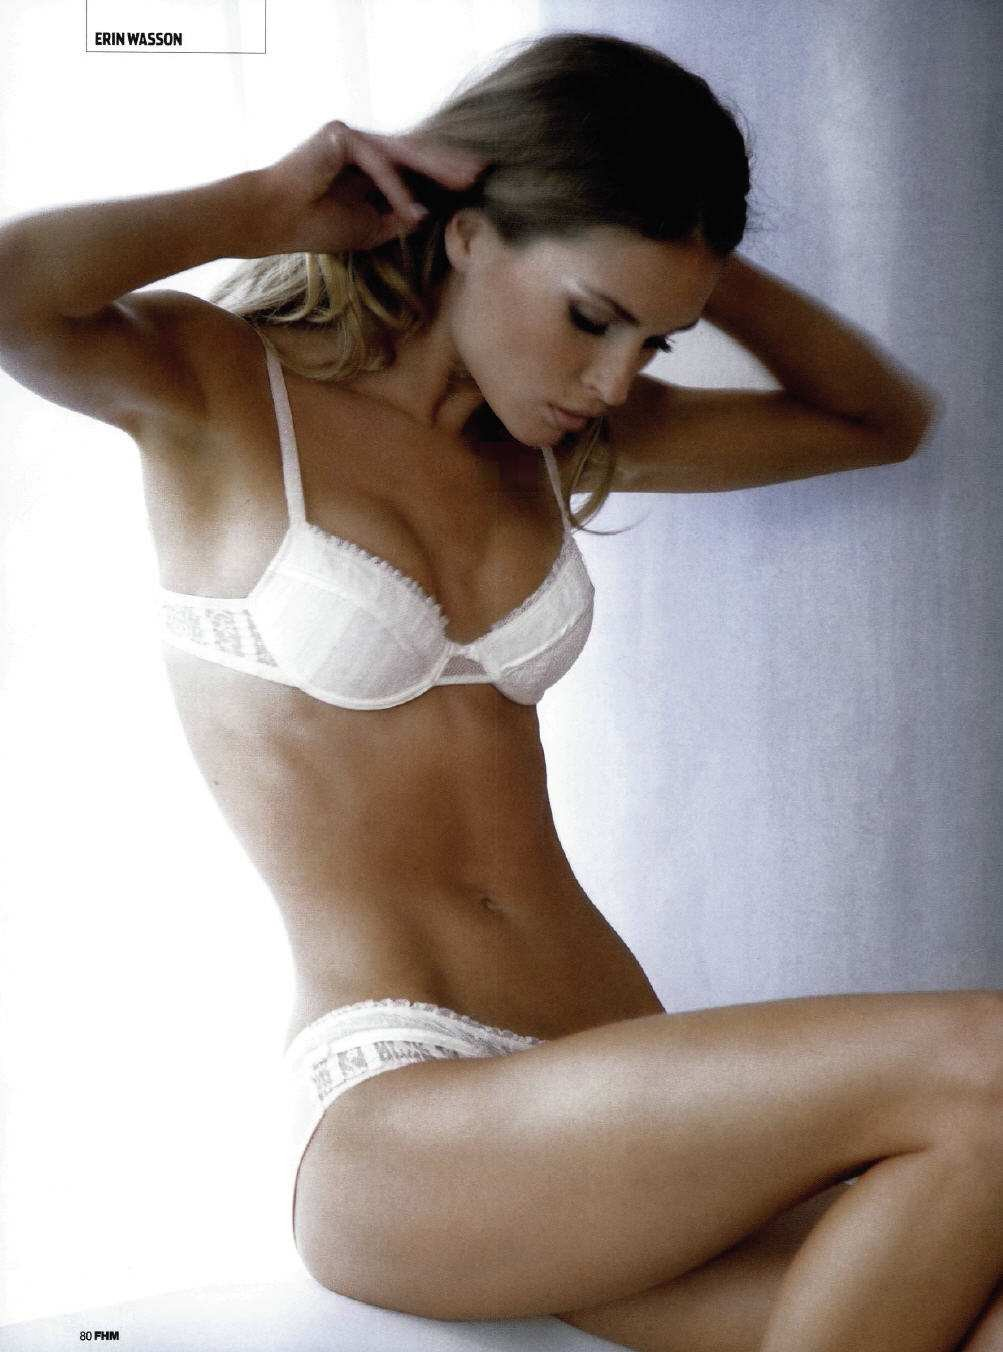 Erin Wasson in lingerie